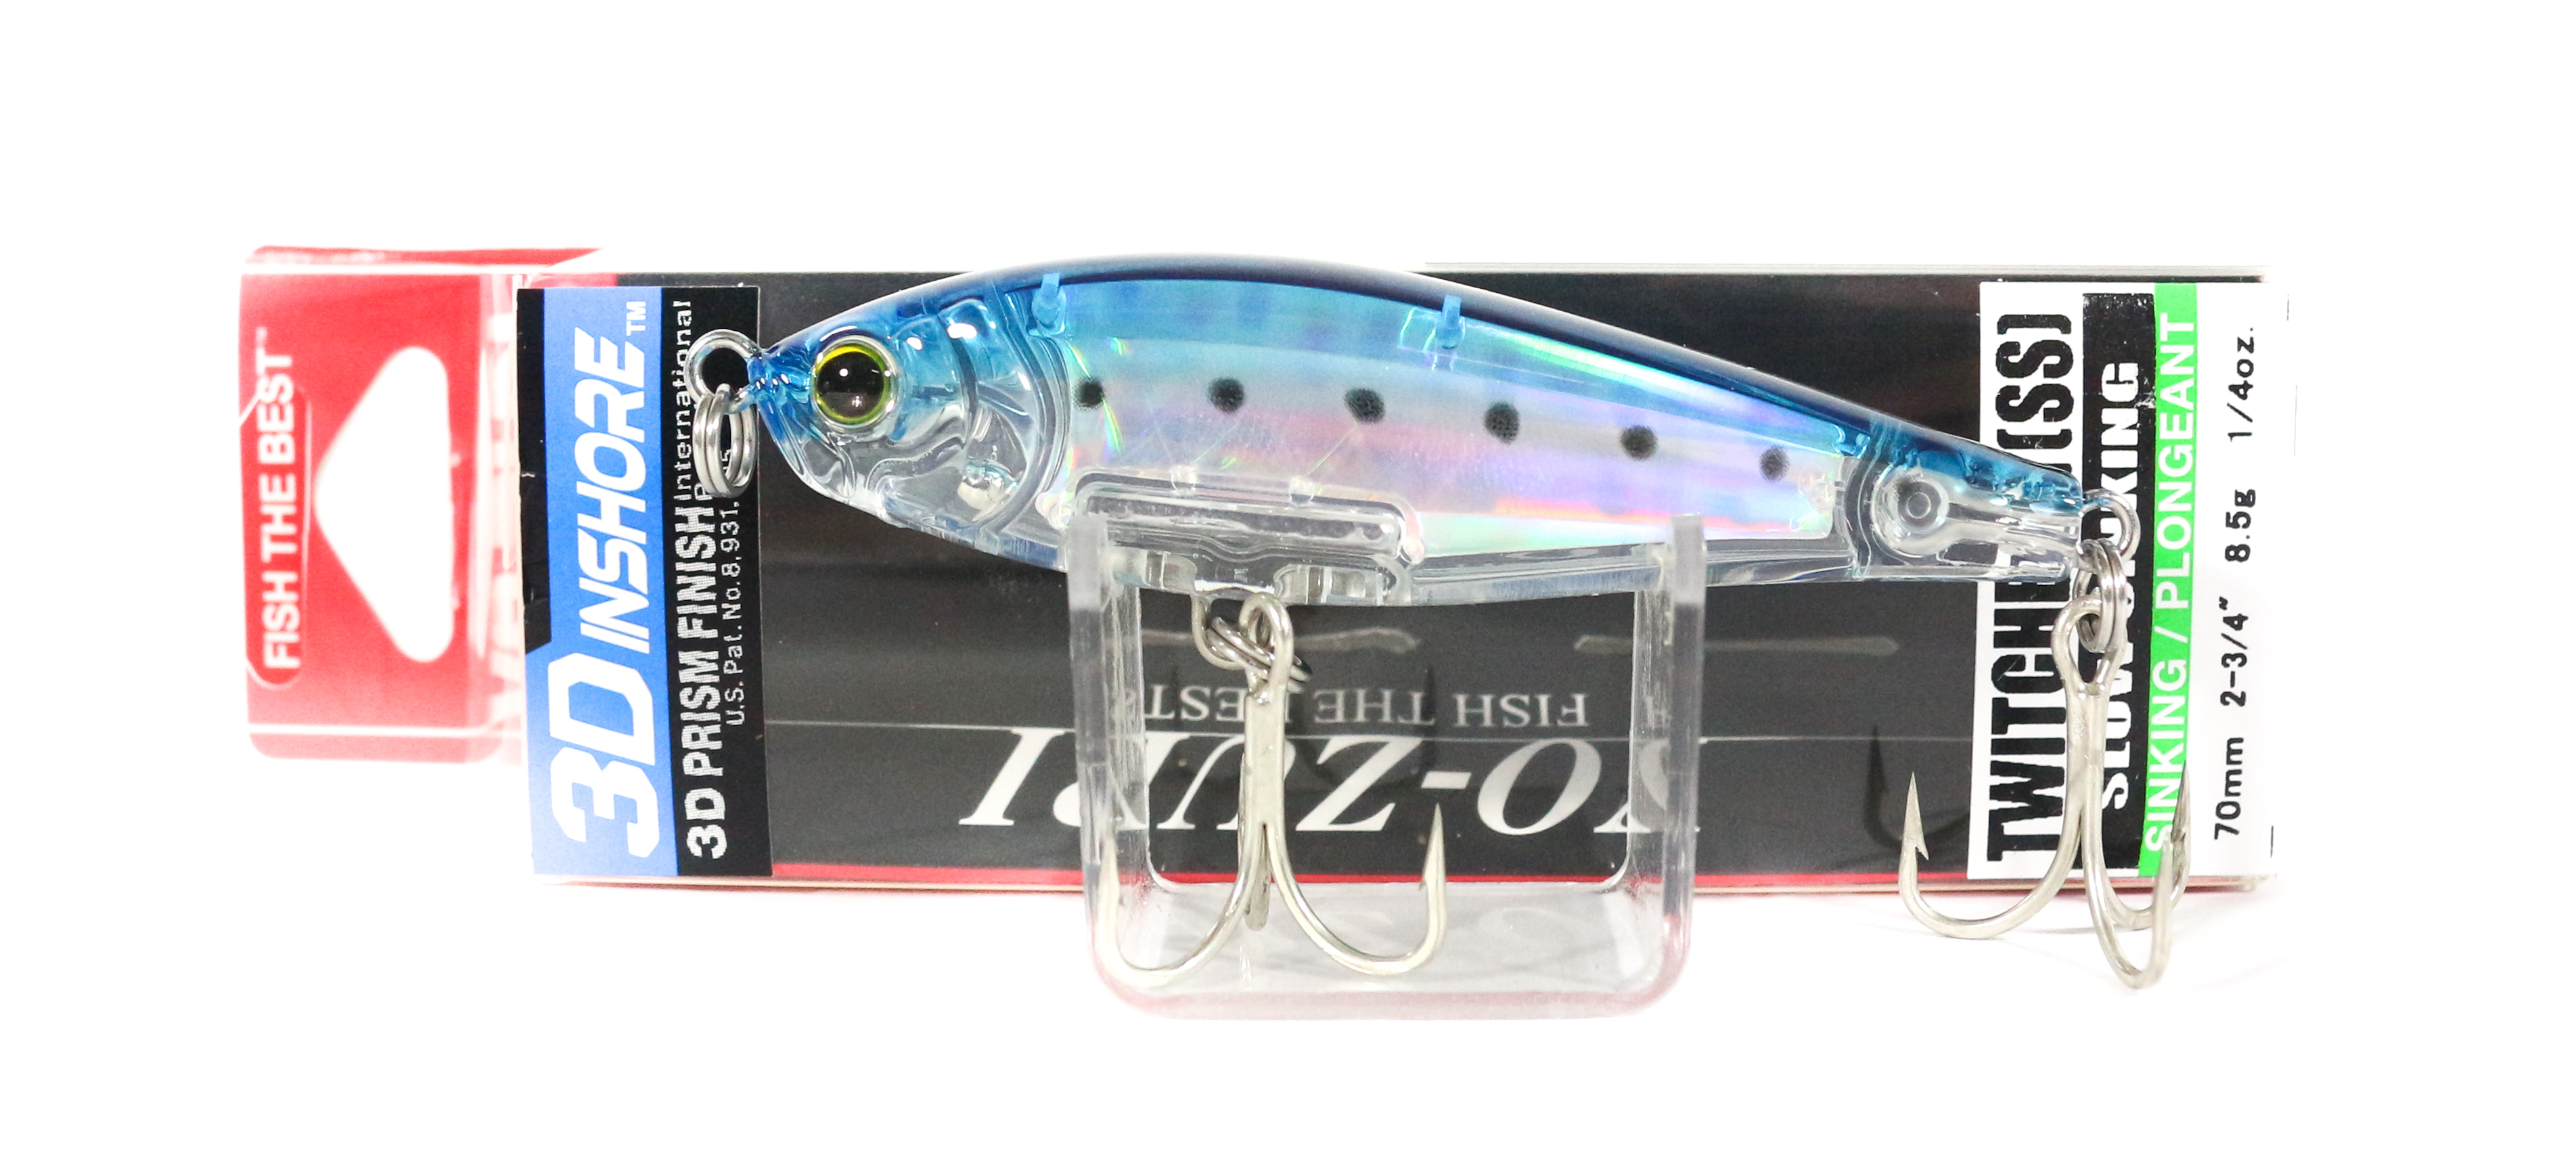 Yo Zuri Duel 3D Inshore Twitchbait 70SS Slow Sinking Lure R1207-GHIW (6978)